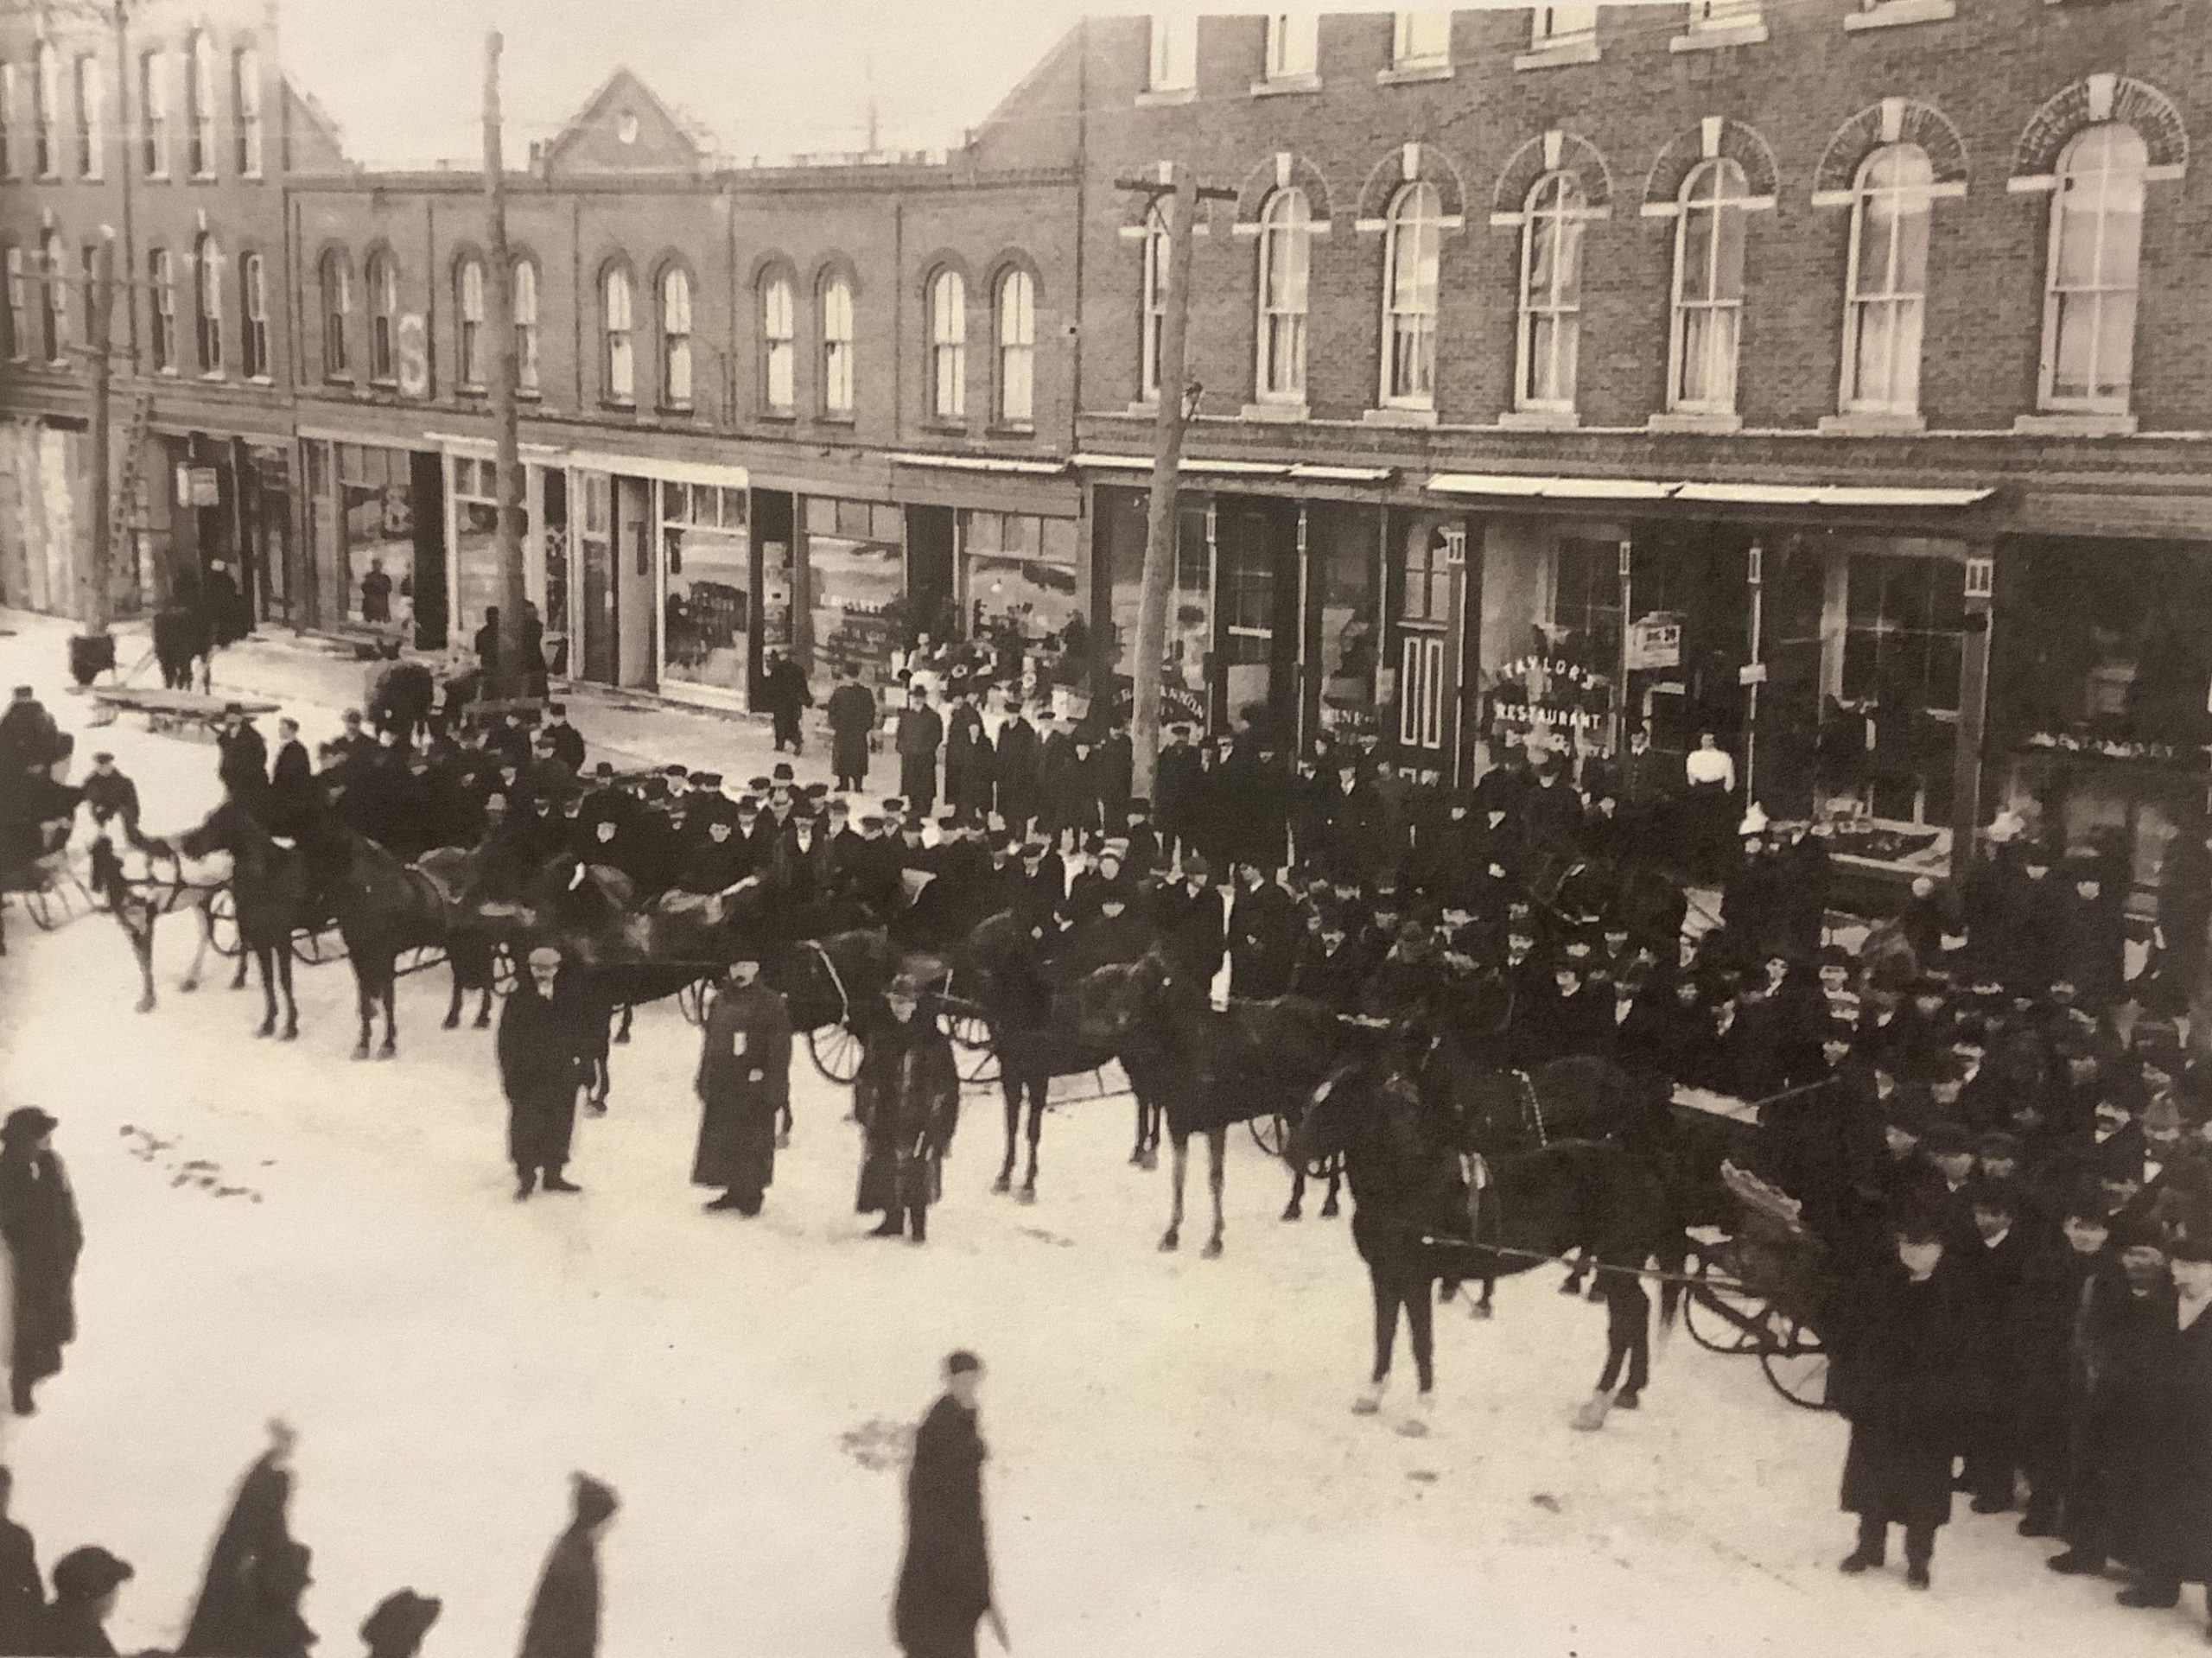 'A Great Event:' The Lindsay winter carnival of 1912-1917